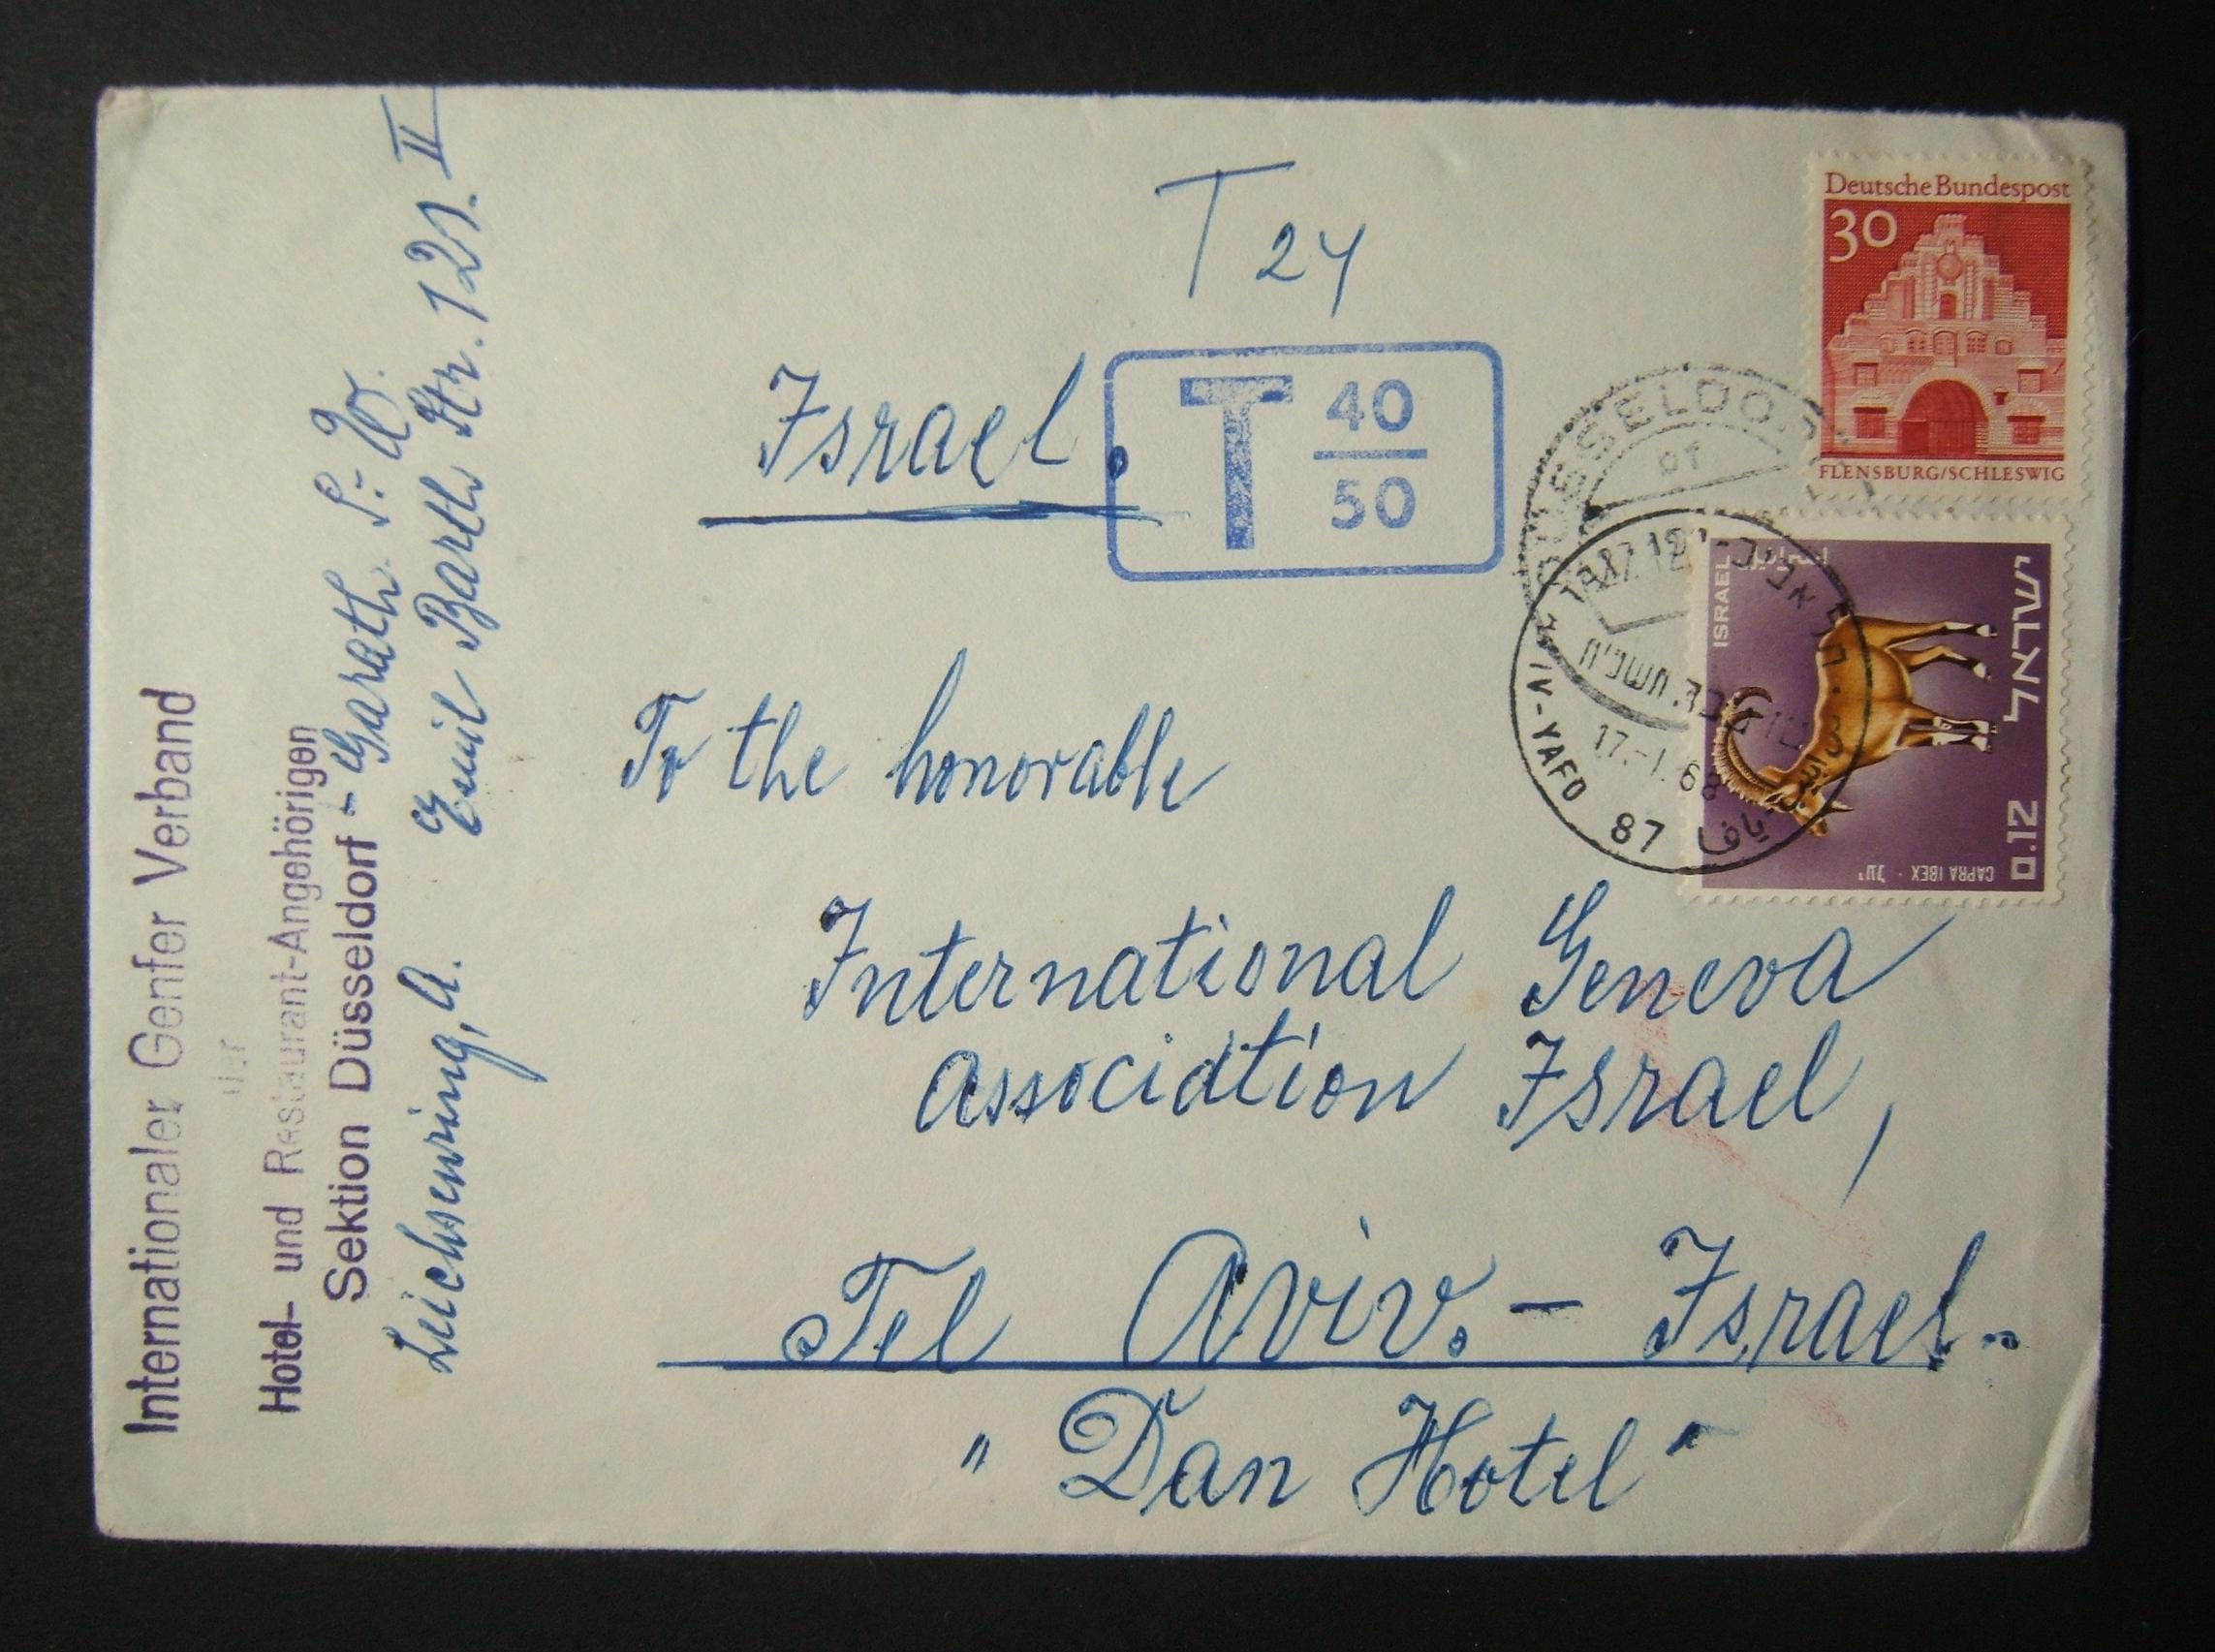 1968 incoming German postage due mail: 27-12-67 surface mailed commercial cover ex DUSSELDORF to TLV underfranked at 30 Pf and taxed twice the deficiency at 24 Pf, paid and franked